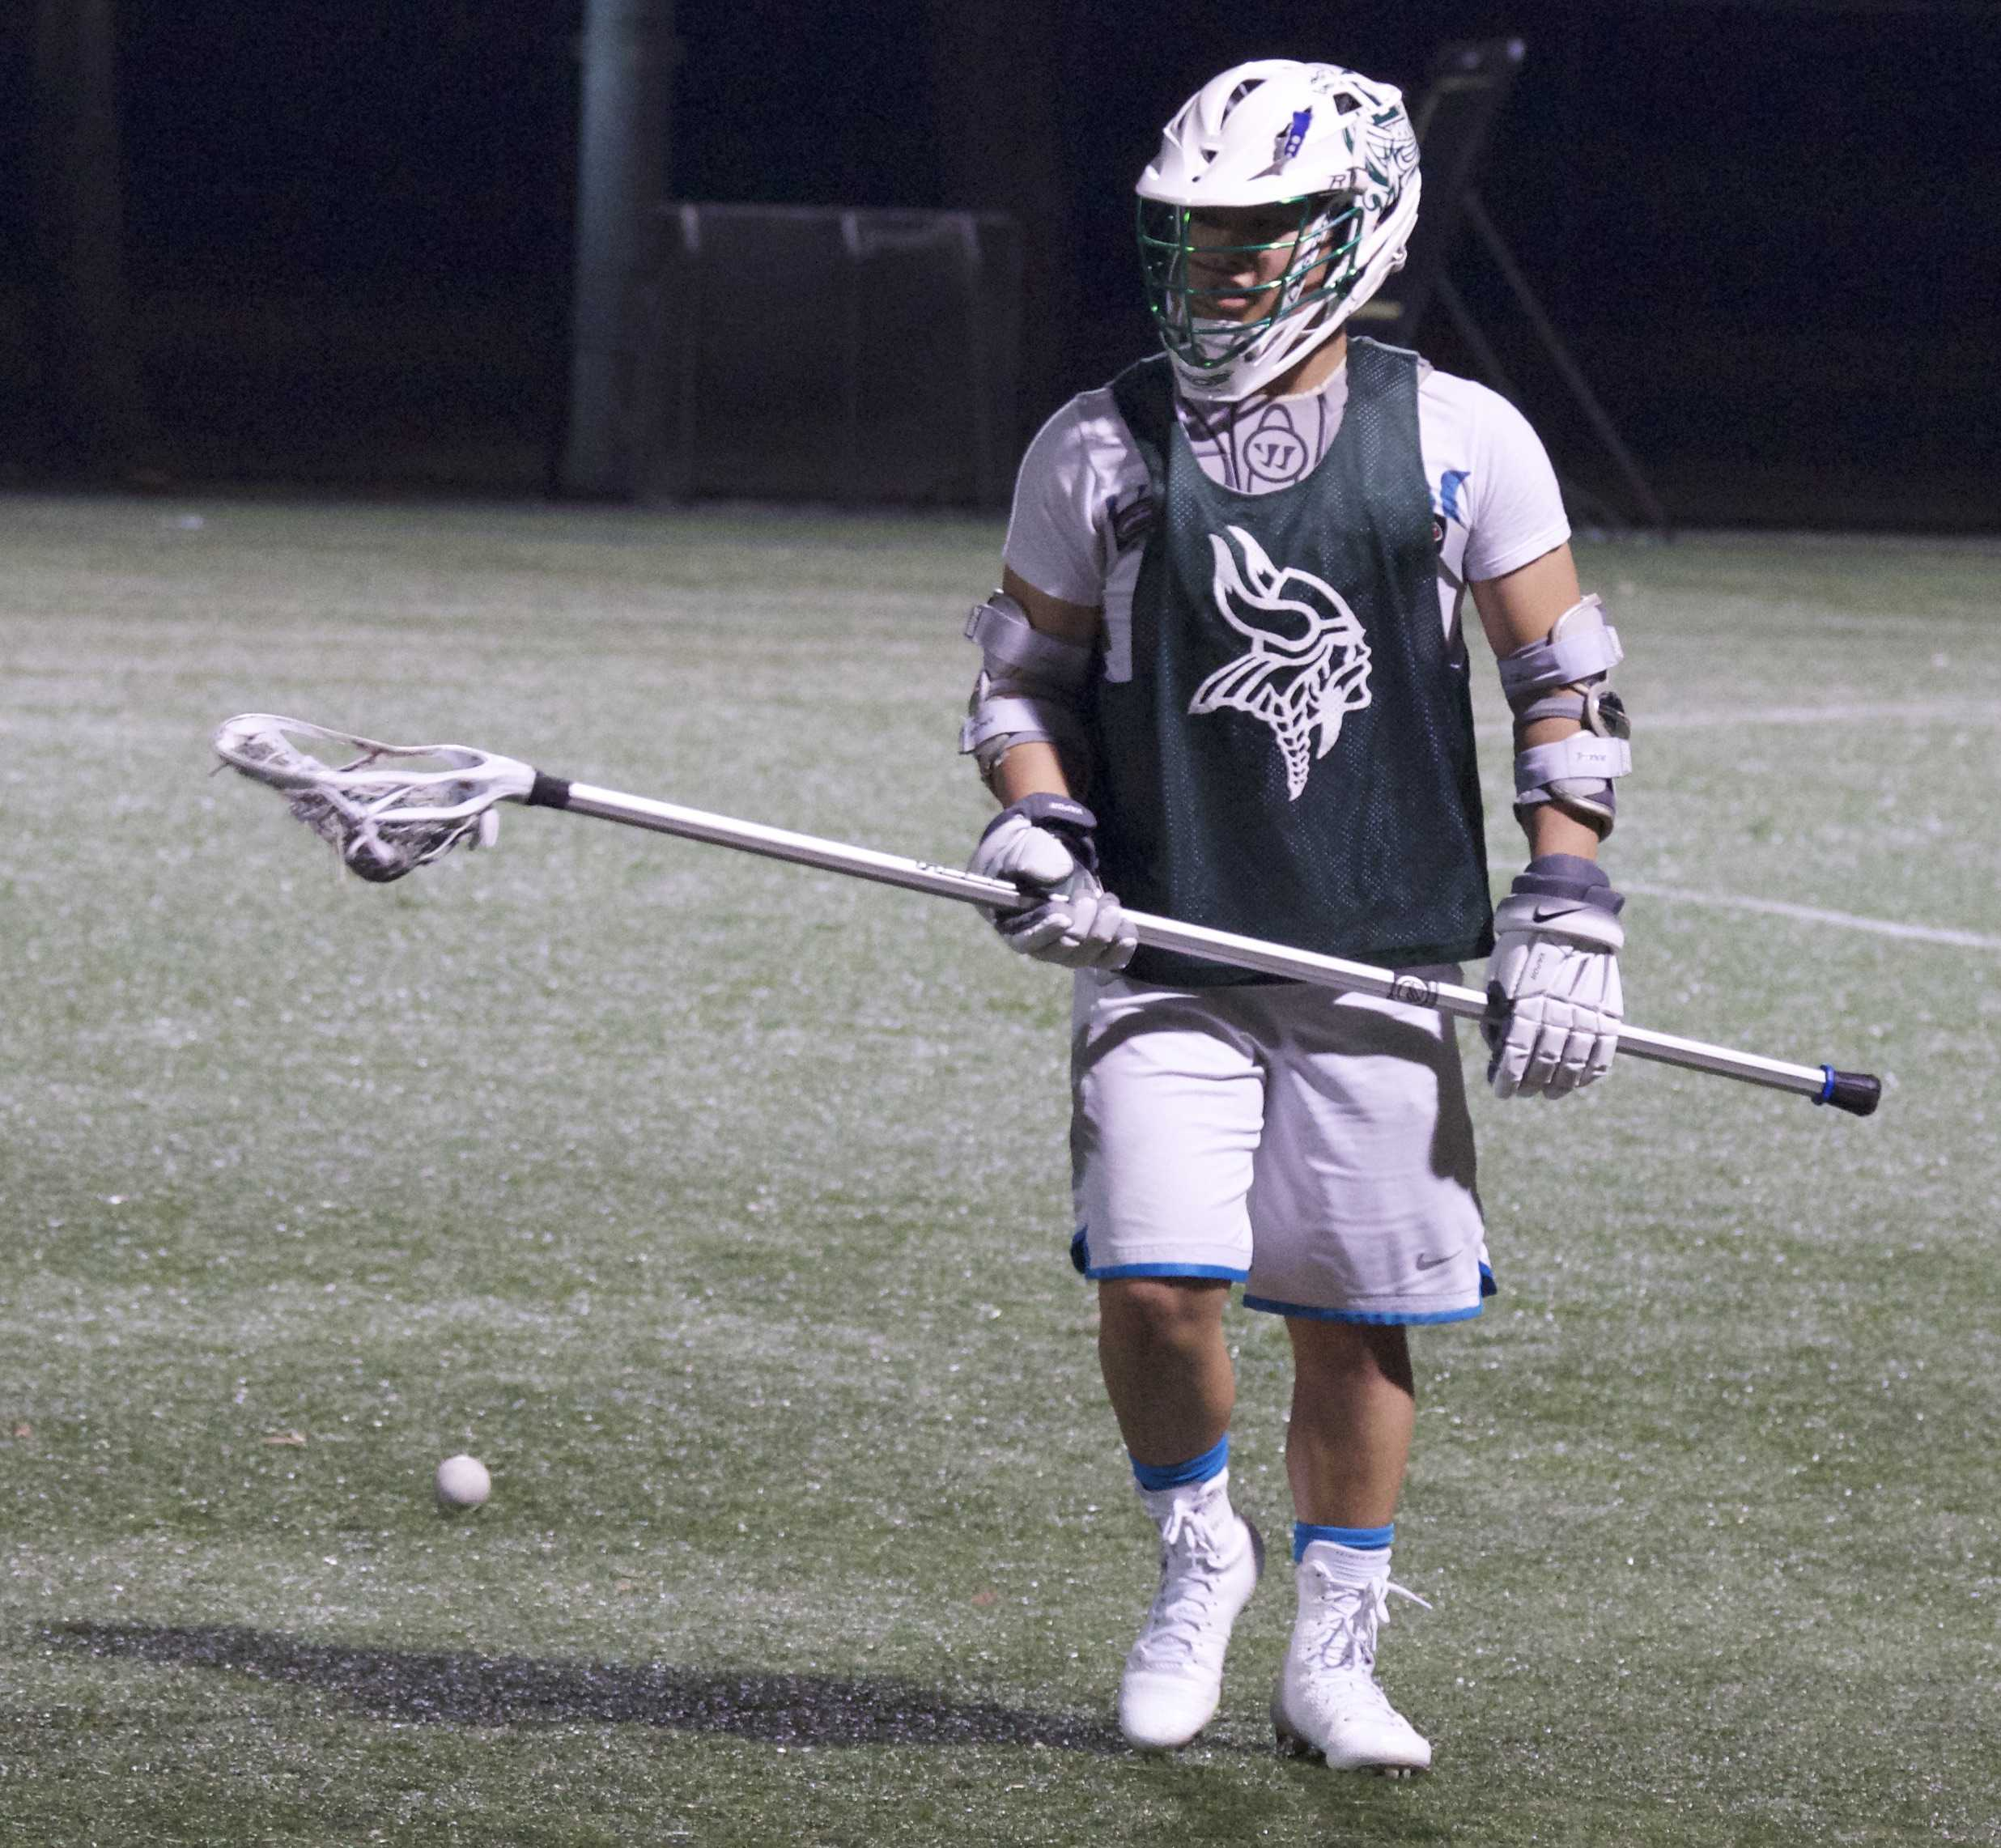 Long stick defender Trevor Woon rotates positions in a drill during preseason practice. The season starts on Mar. 4. Photo by Sam Lee.